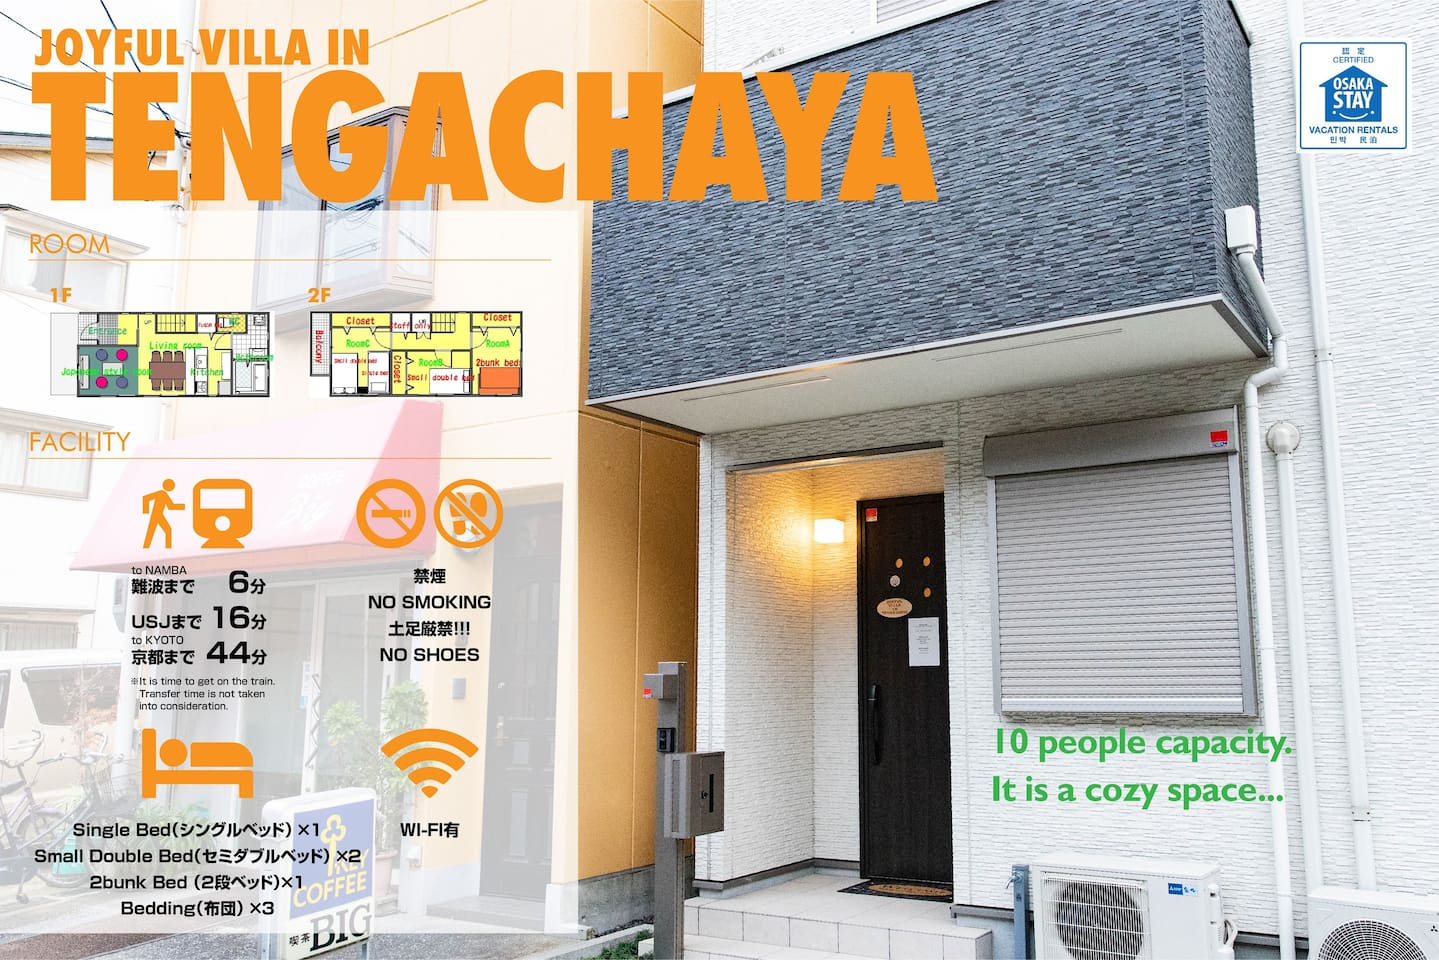 We will rent a whole house. Newly built house. There are 3 bedrooms on the second floor. The first floor has a large living and kitchen. The bath is large and comfortable. There is a Japanese-style room space on the first floor living room.